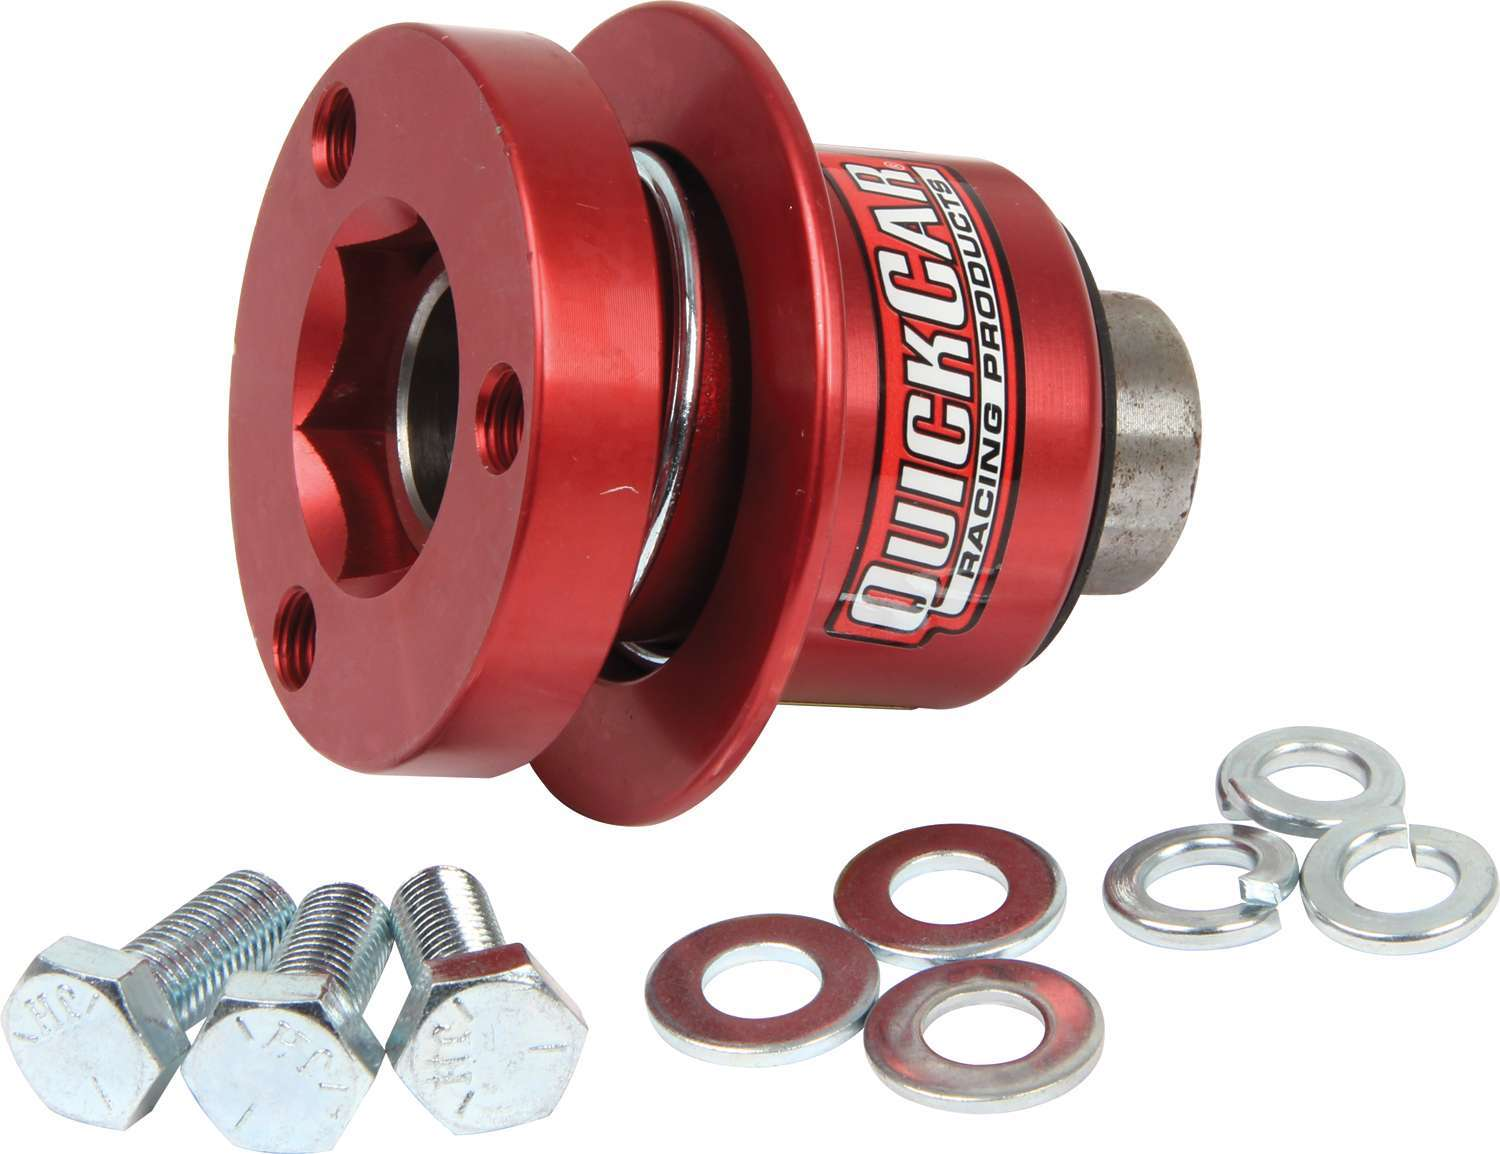 68-012 Quickcar Racing Products Steering Disconnect 360 Type Hex Alum